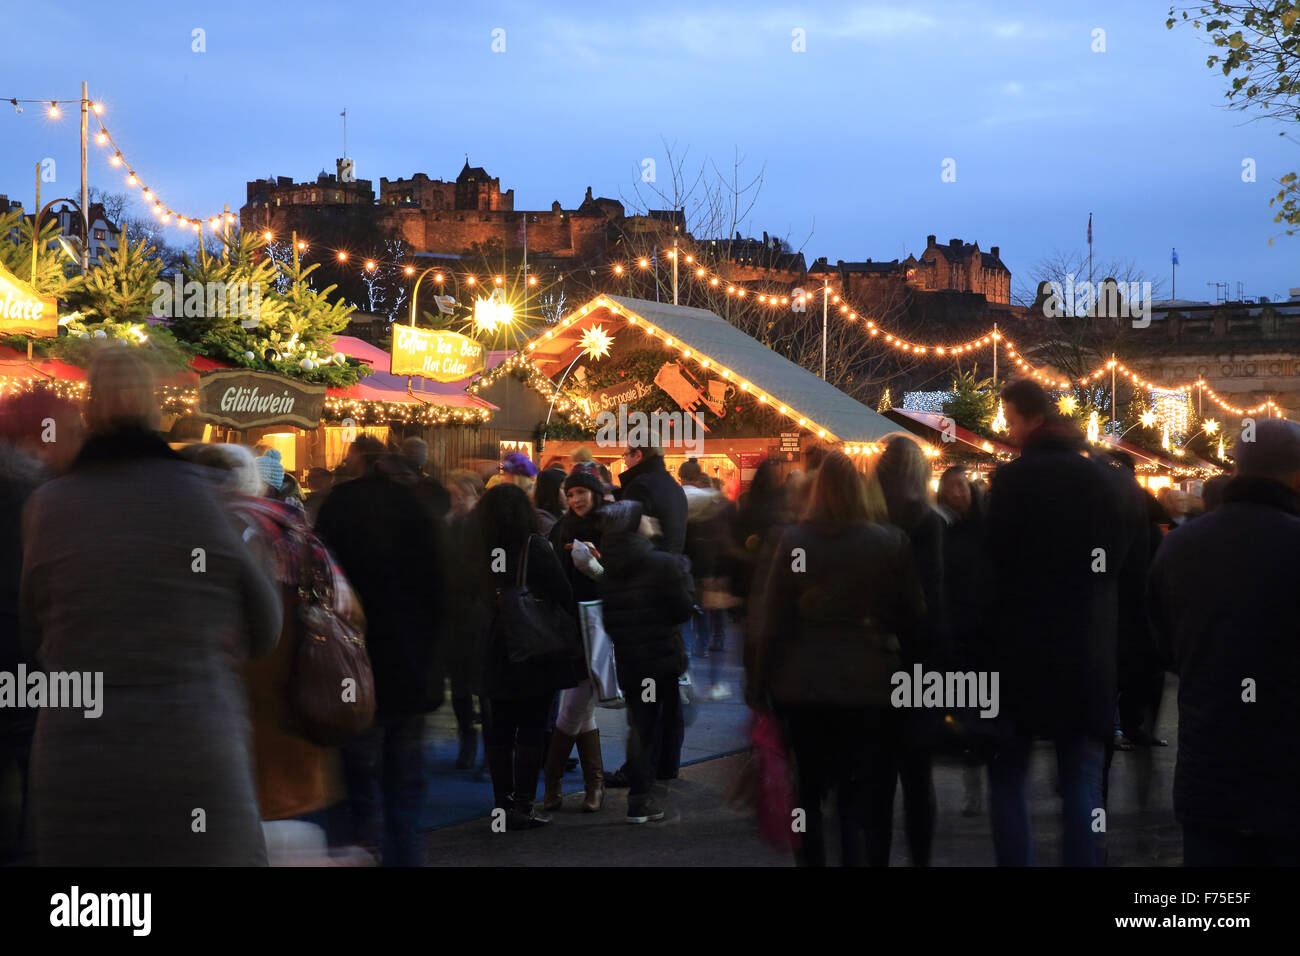 Edinburgh Christmas Market in East Princes Street Gardens, with ...